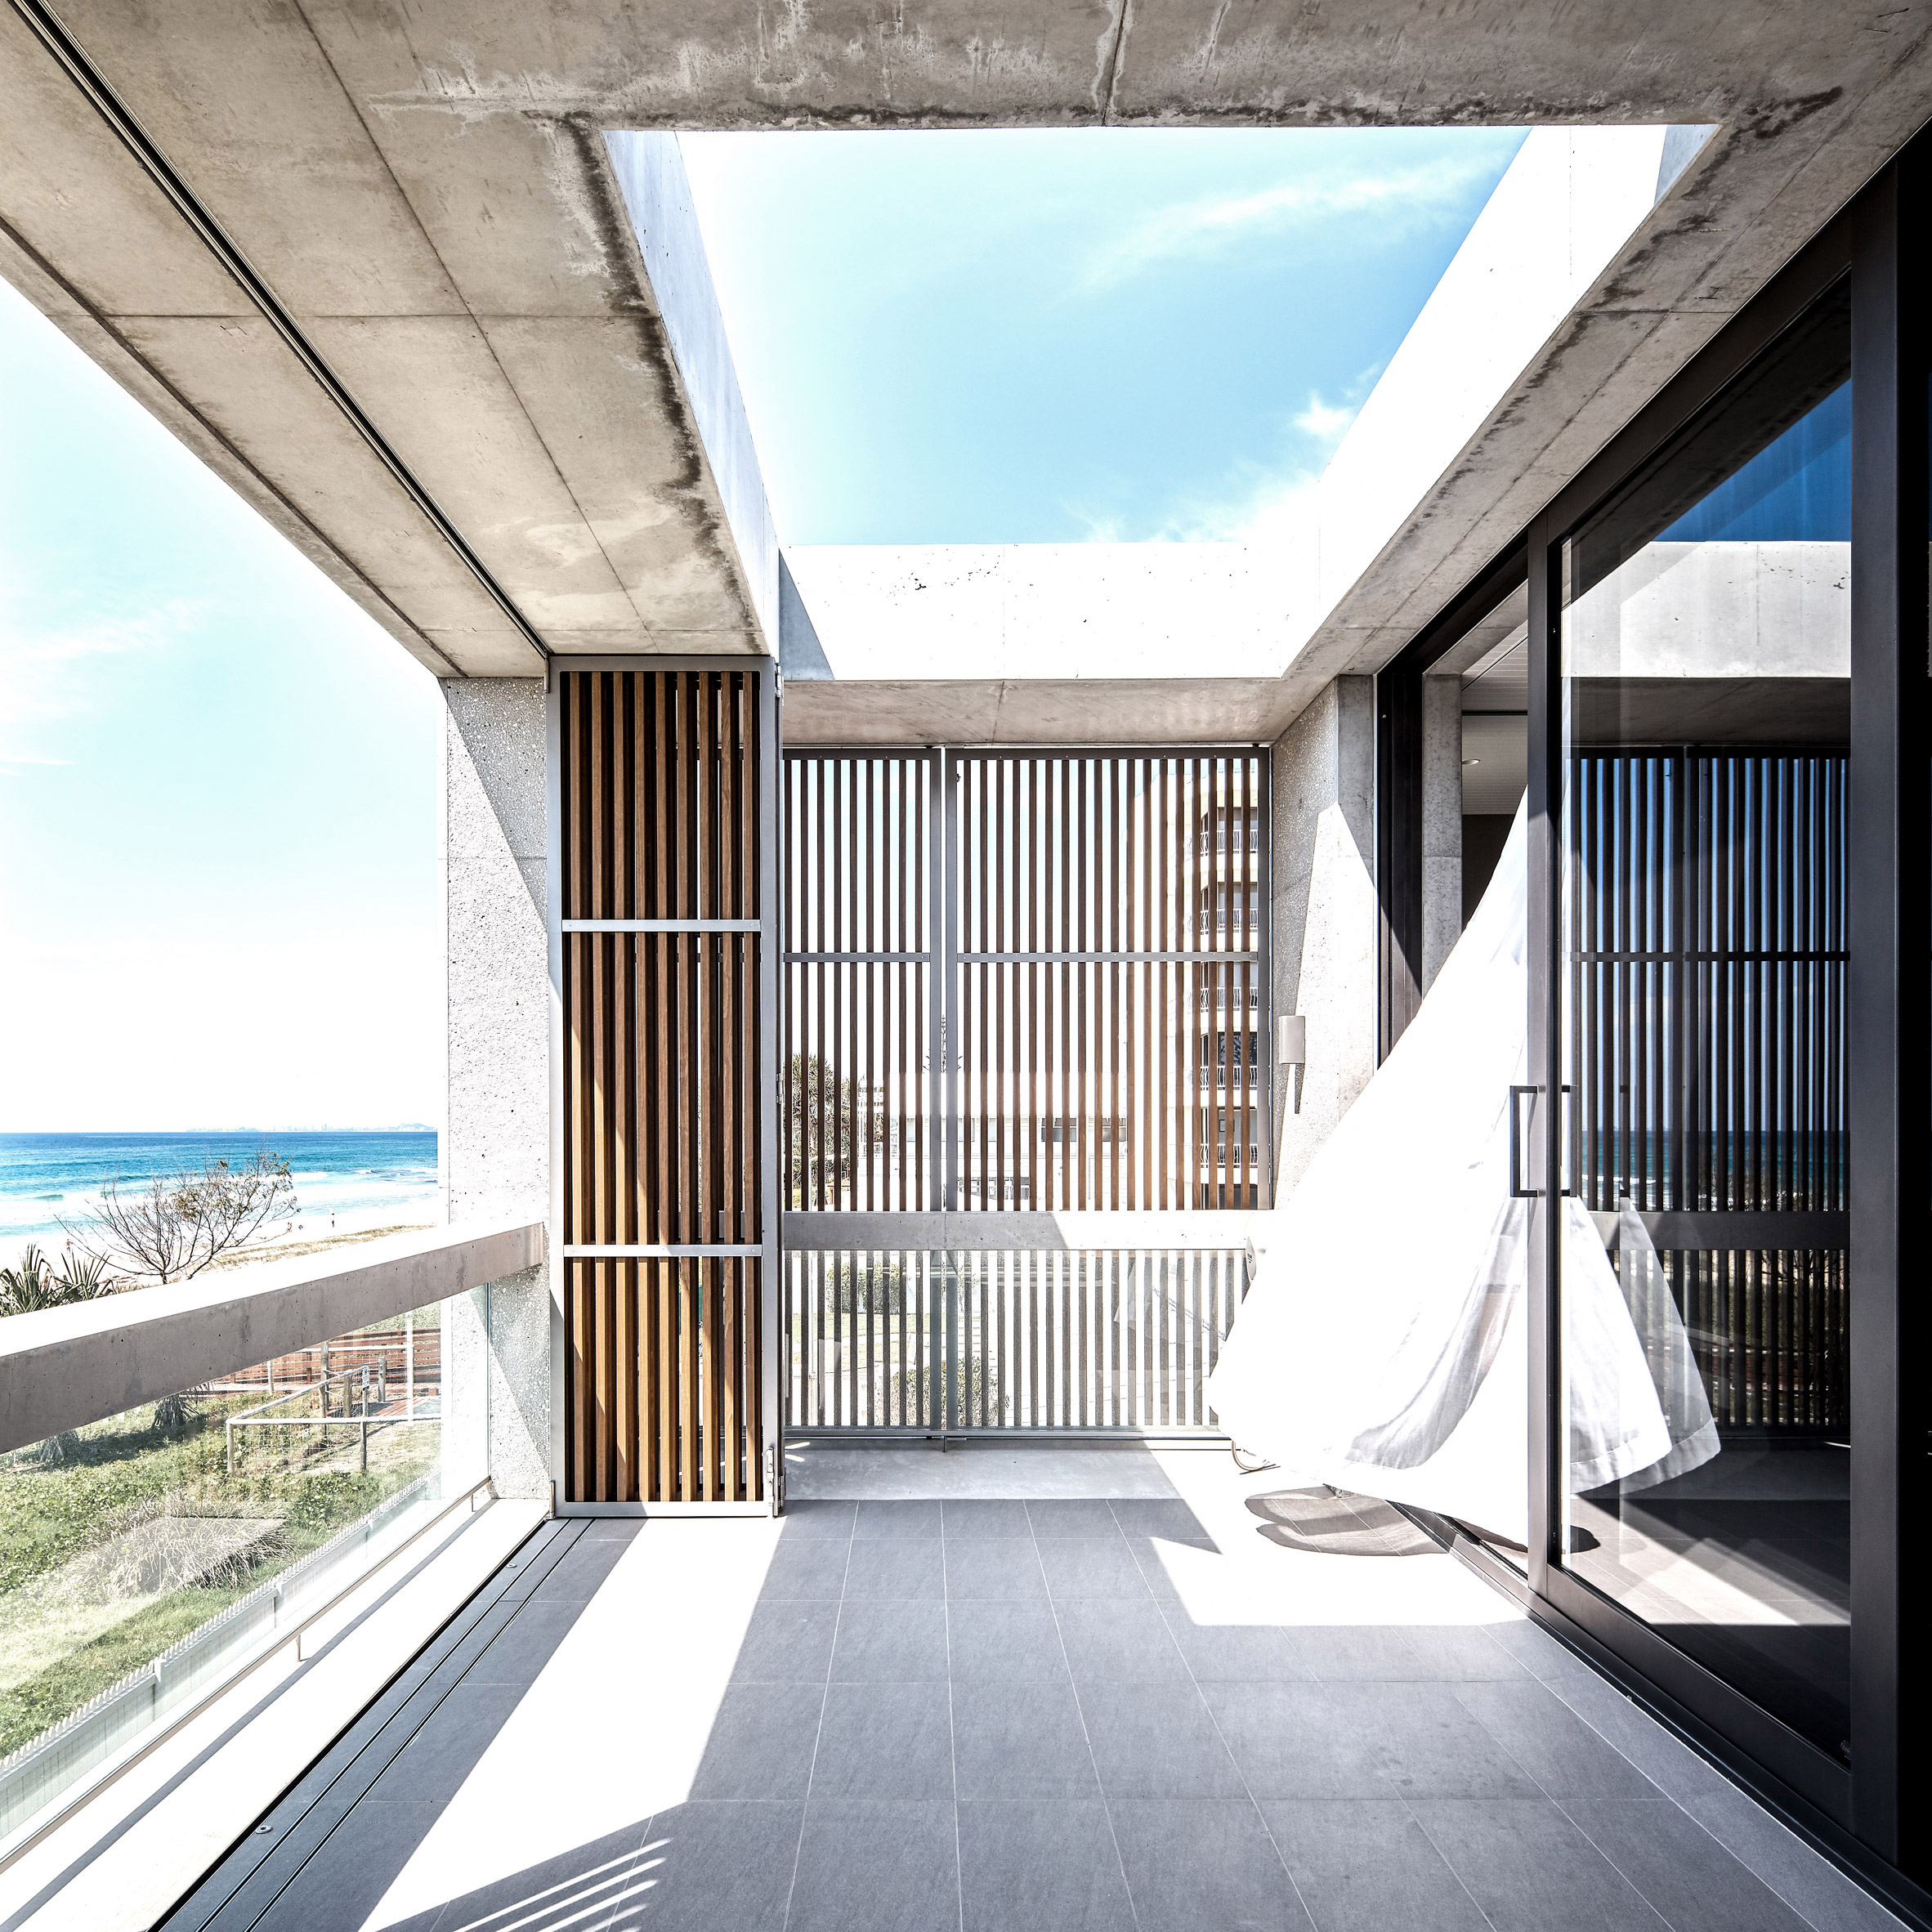 Mermaid Beach Residence by B.E. Architecture